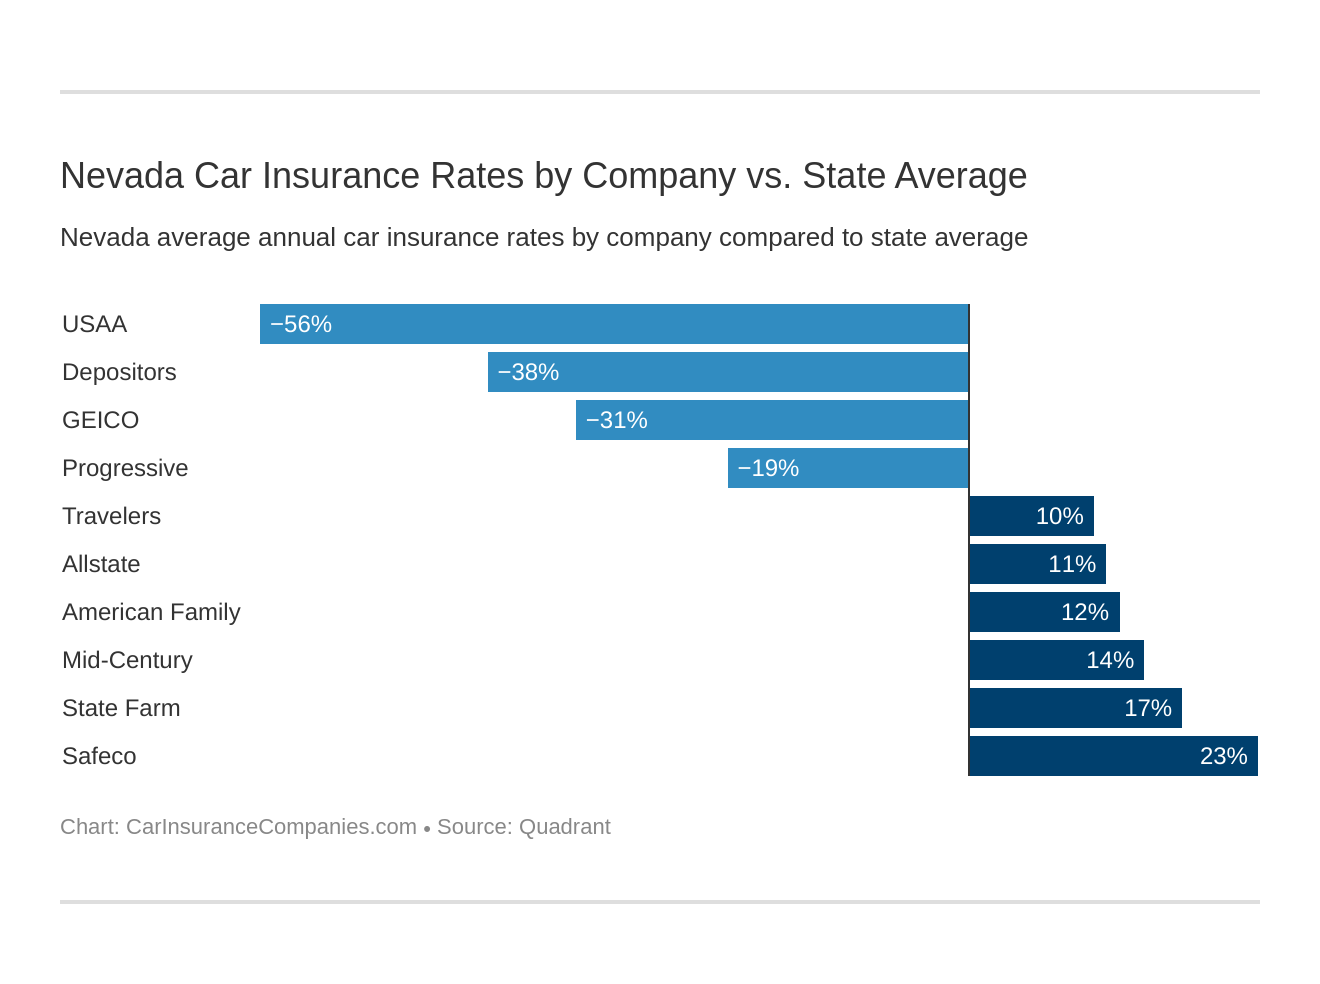 Nevada Car Insurance Rates by Company vs. State Average